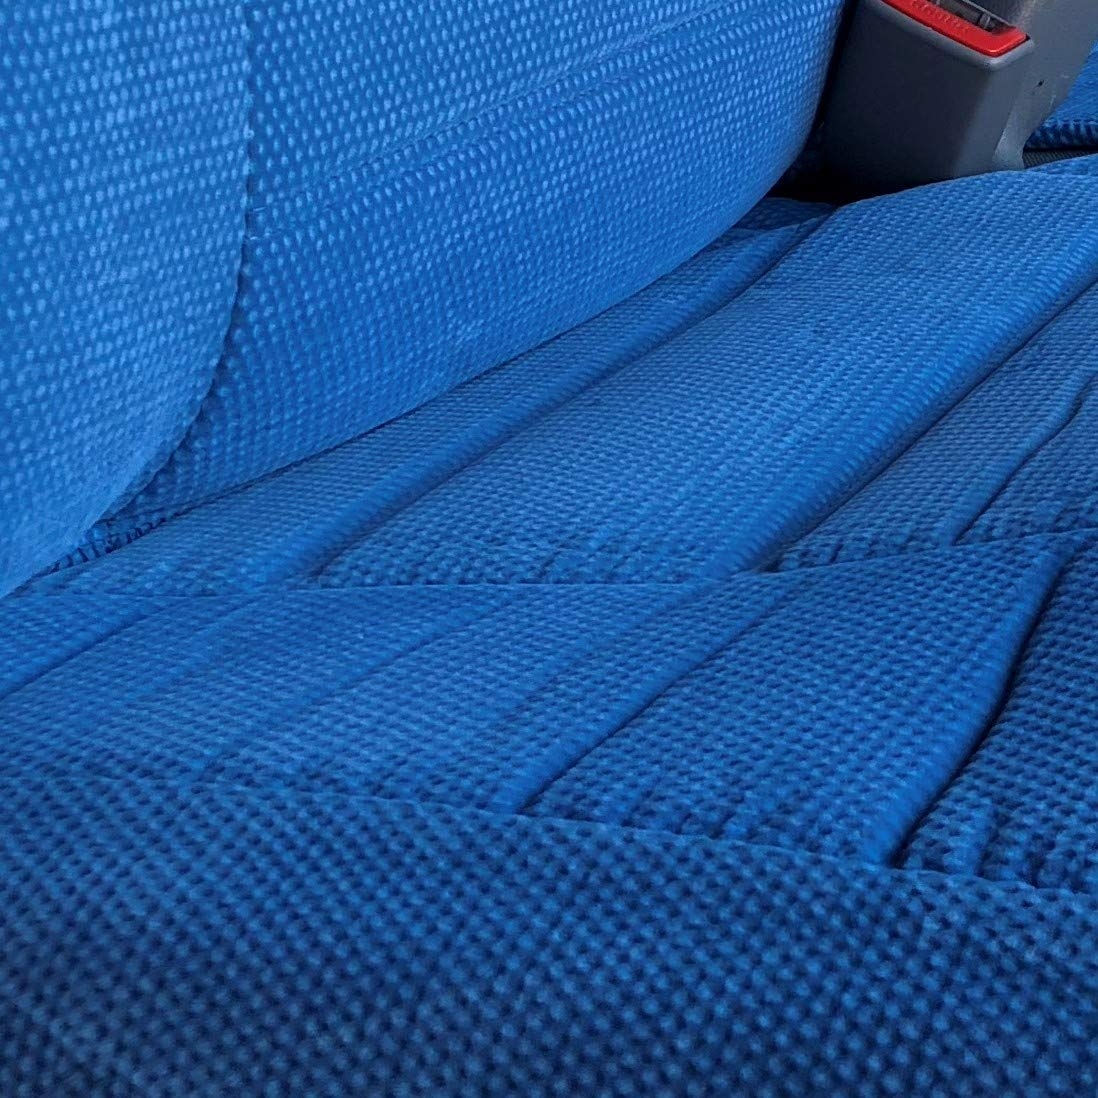 Blue RealSeatCovers for Front Bench Thick A25 Molded Headrest Small Notched Cushion Seat Cover for Toyota Pickup 1990-1995